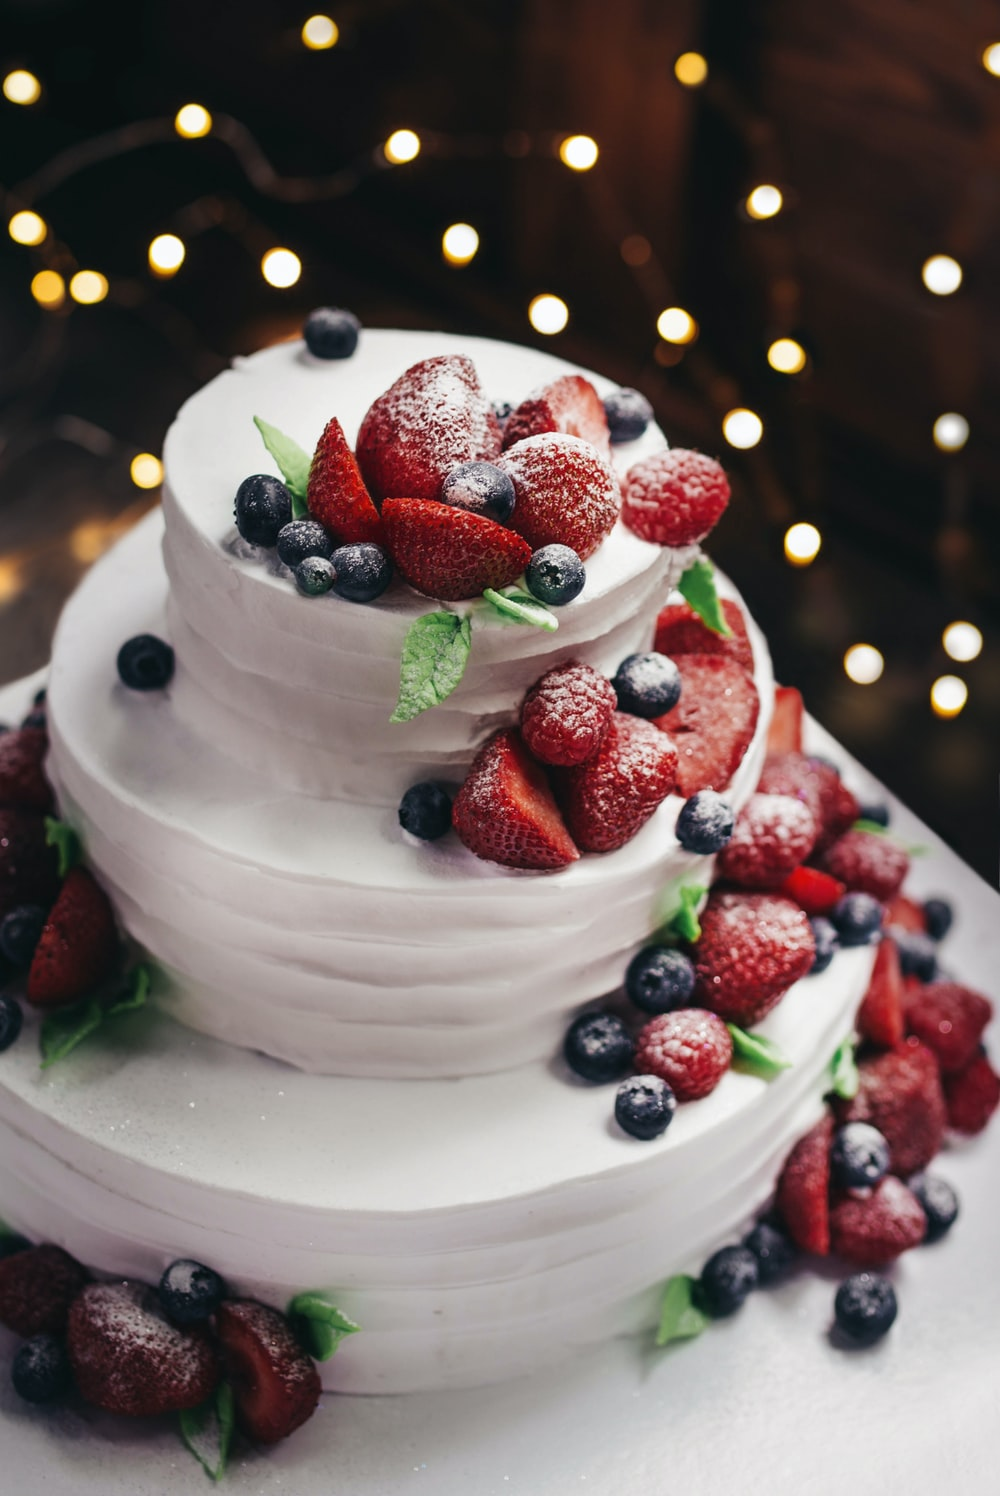 100 birthday cake pictures download free images stock photos on close up photography of 3 tier vanilla cake with blueberry and strawberry toppings izmirmasajfo